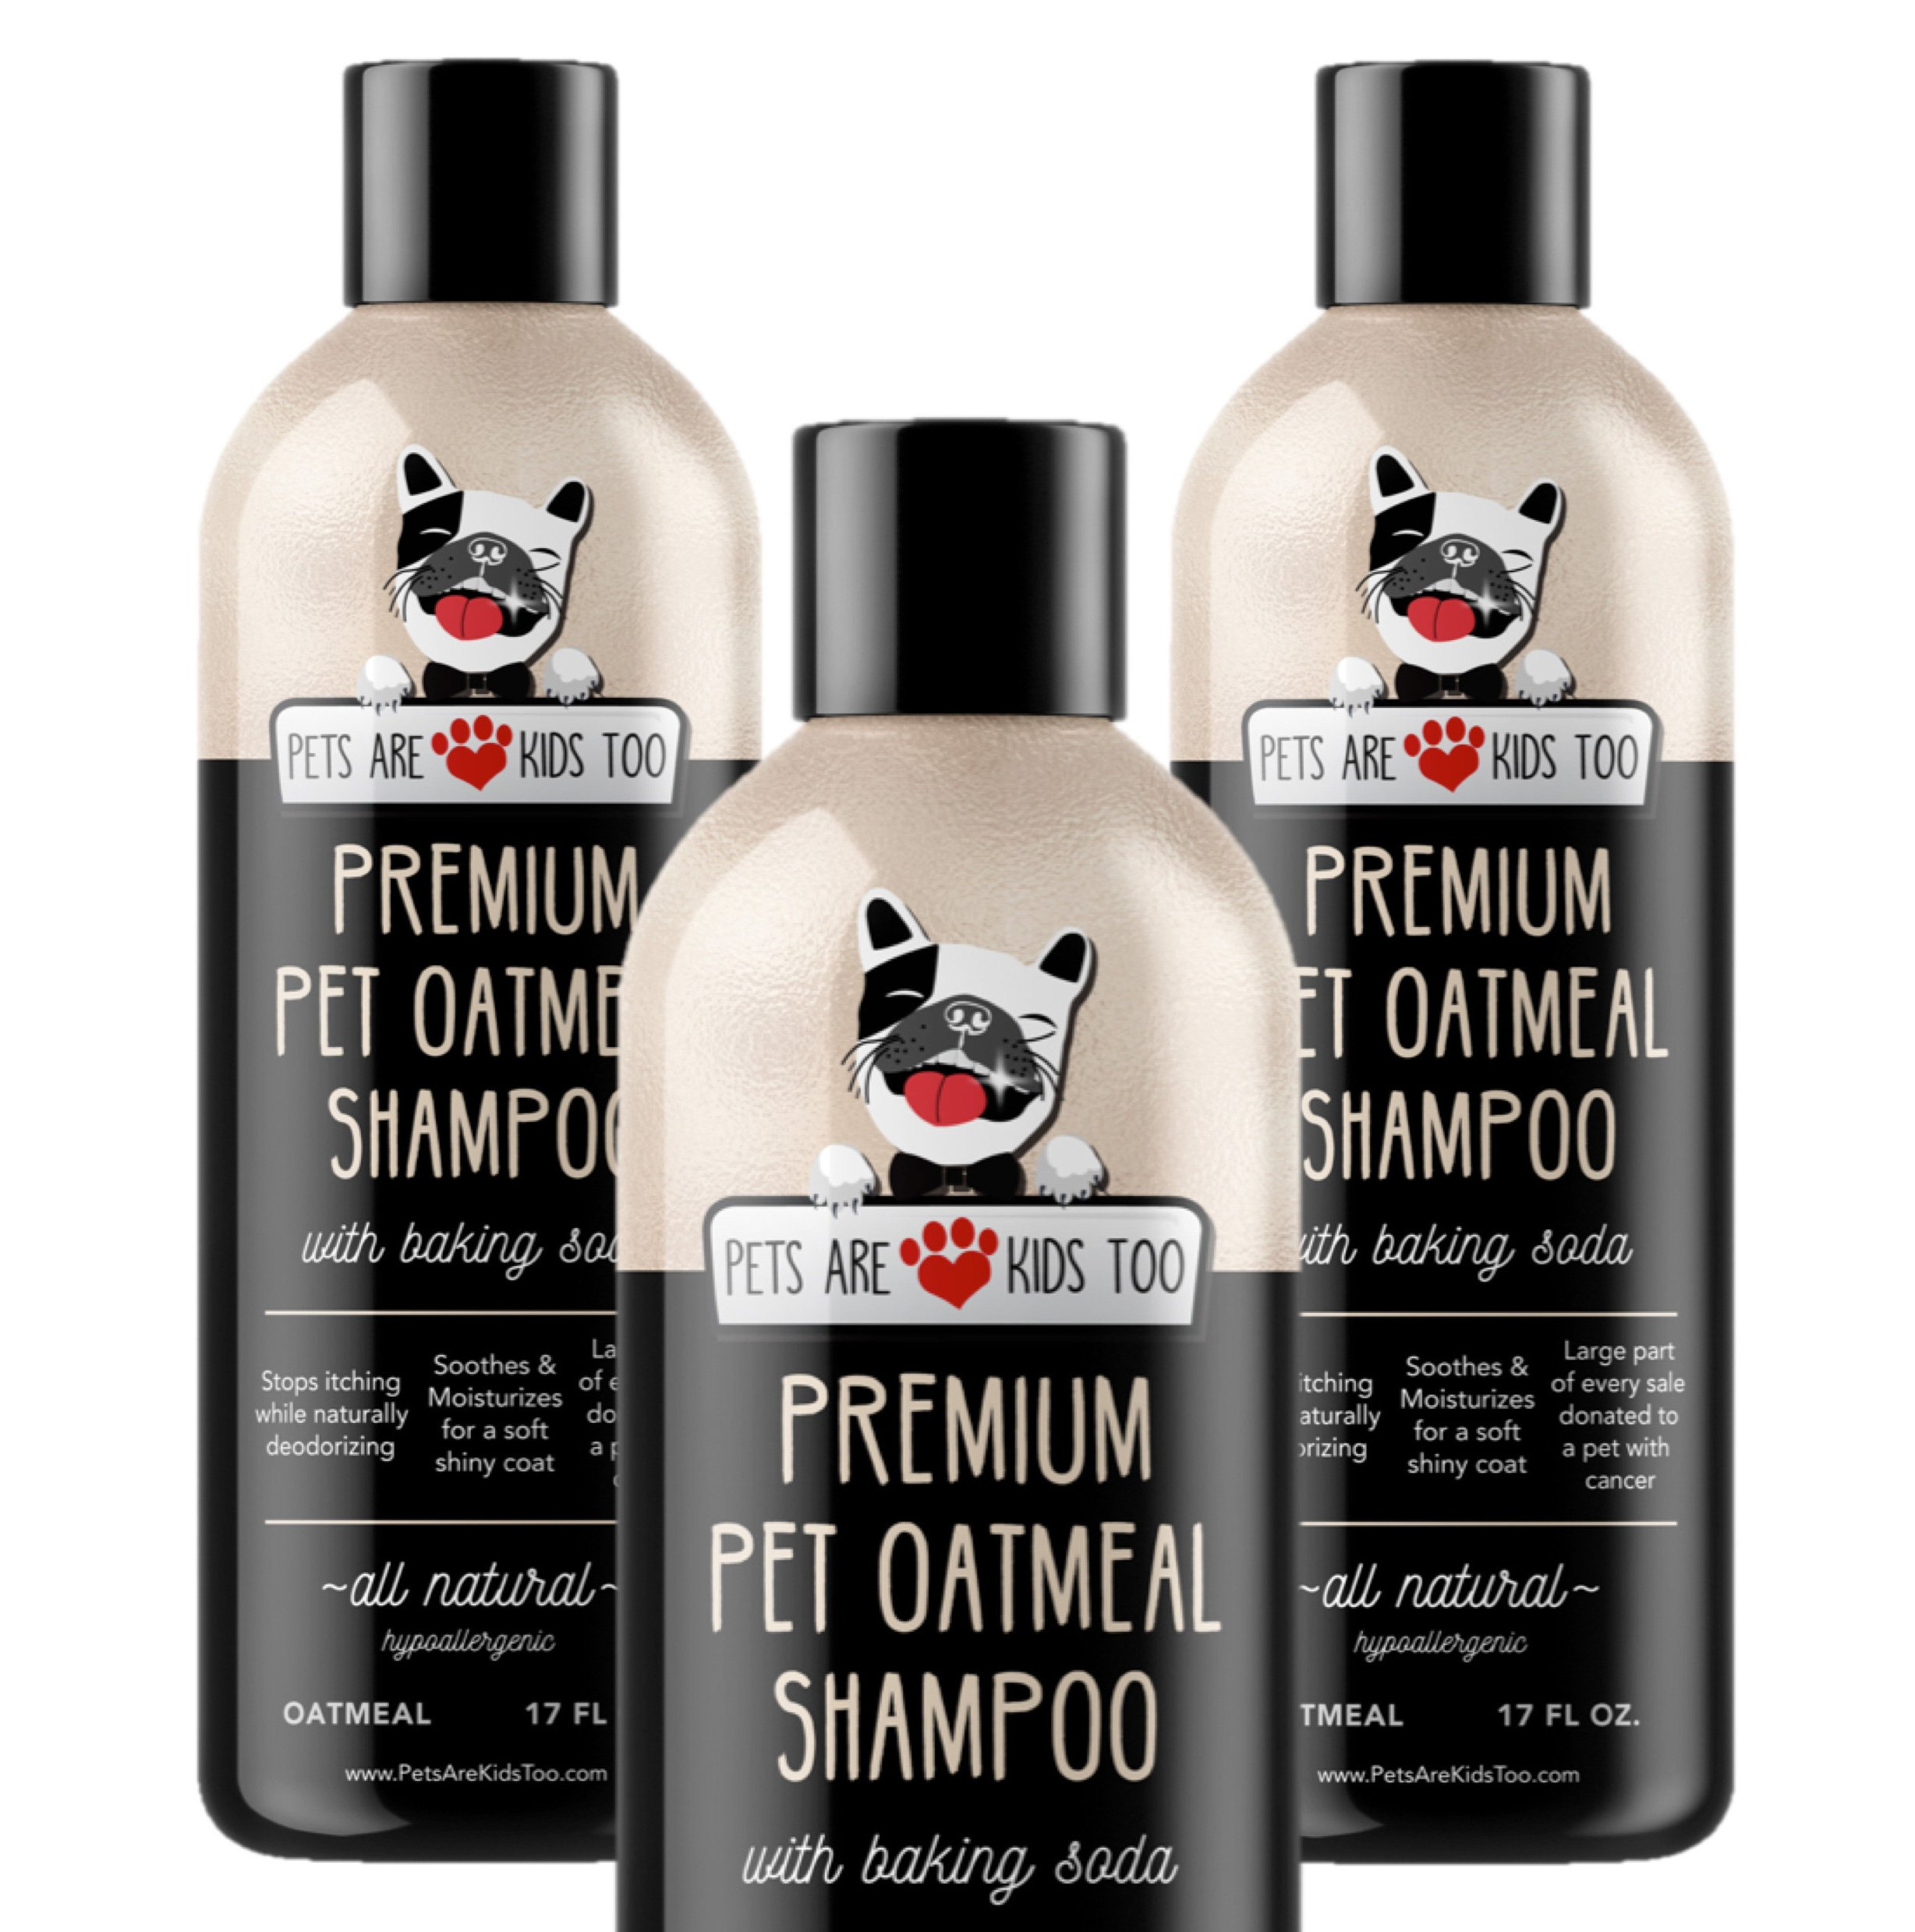 Pets Are Kids Too Pet Oatmeal Anti-Itch Shampoo & Conditioner (3 Pack)